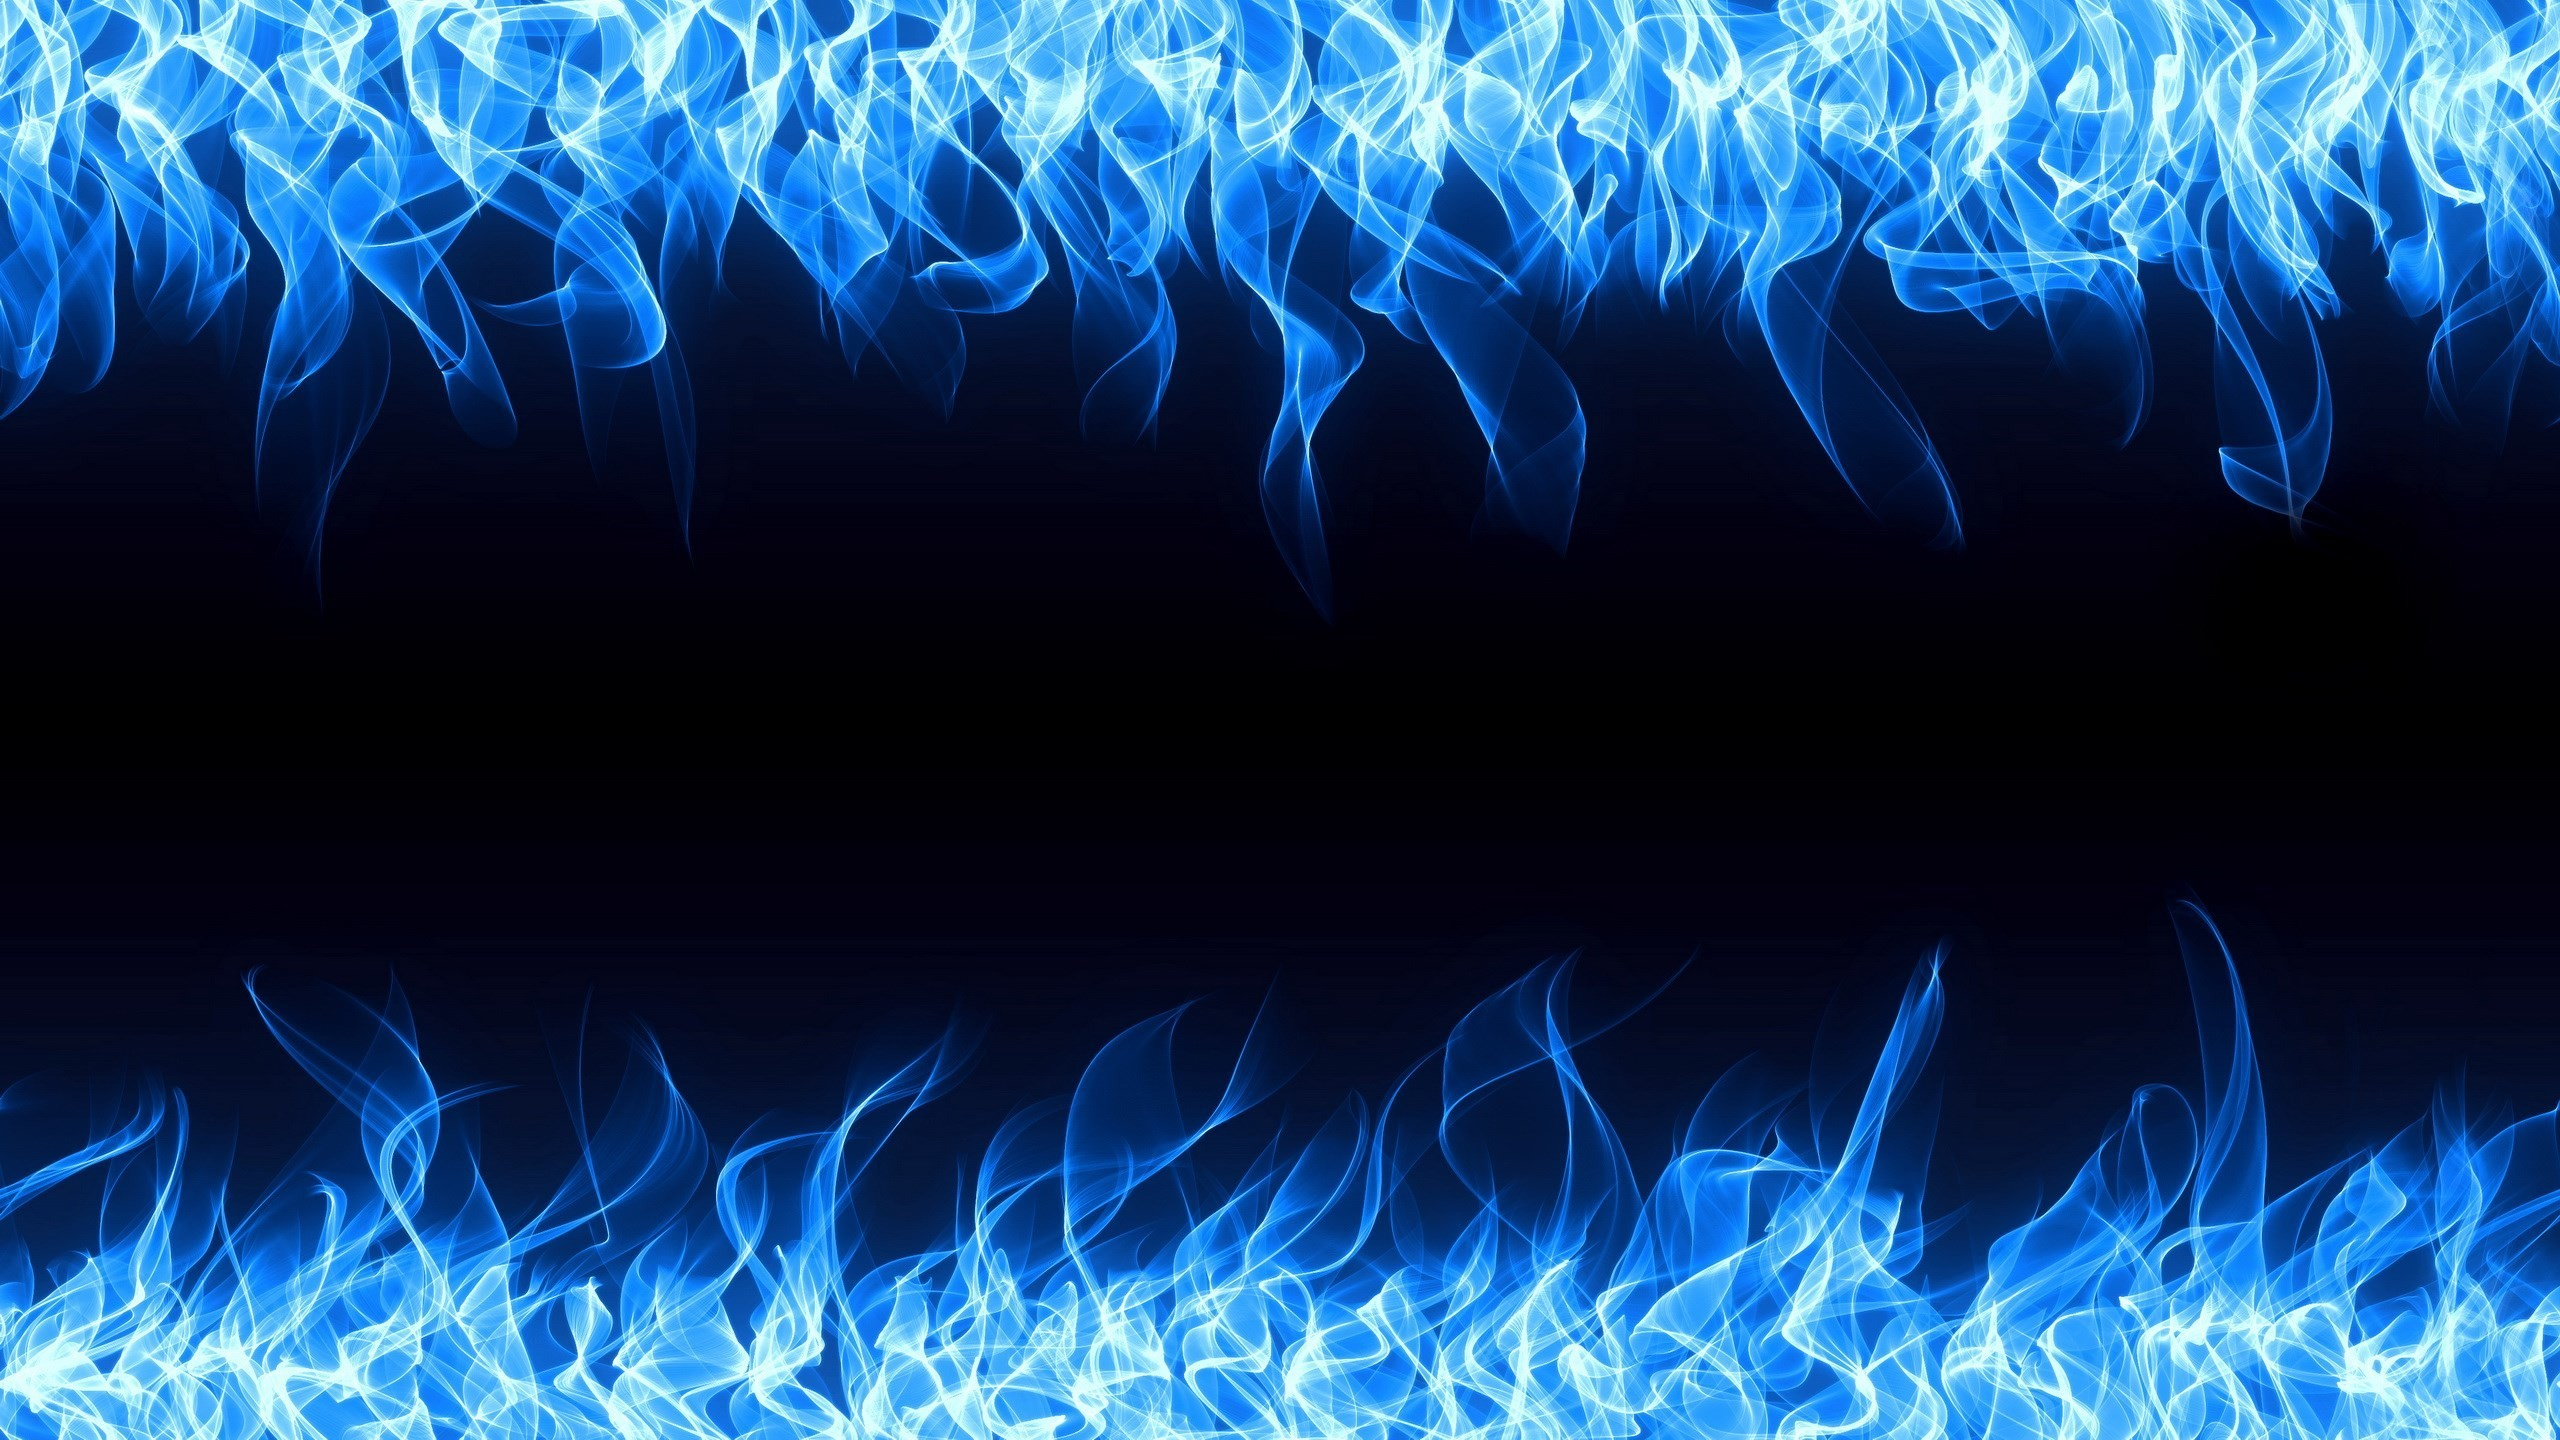 2560x1440 cool wallpaper: Flame Backgrounds (56+ Images